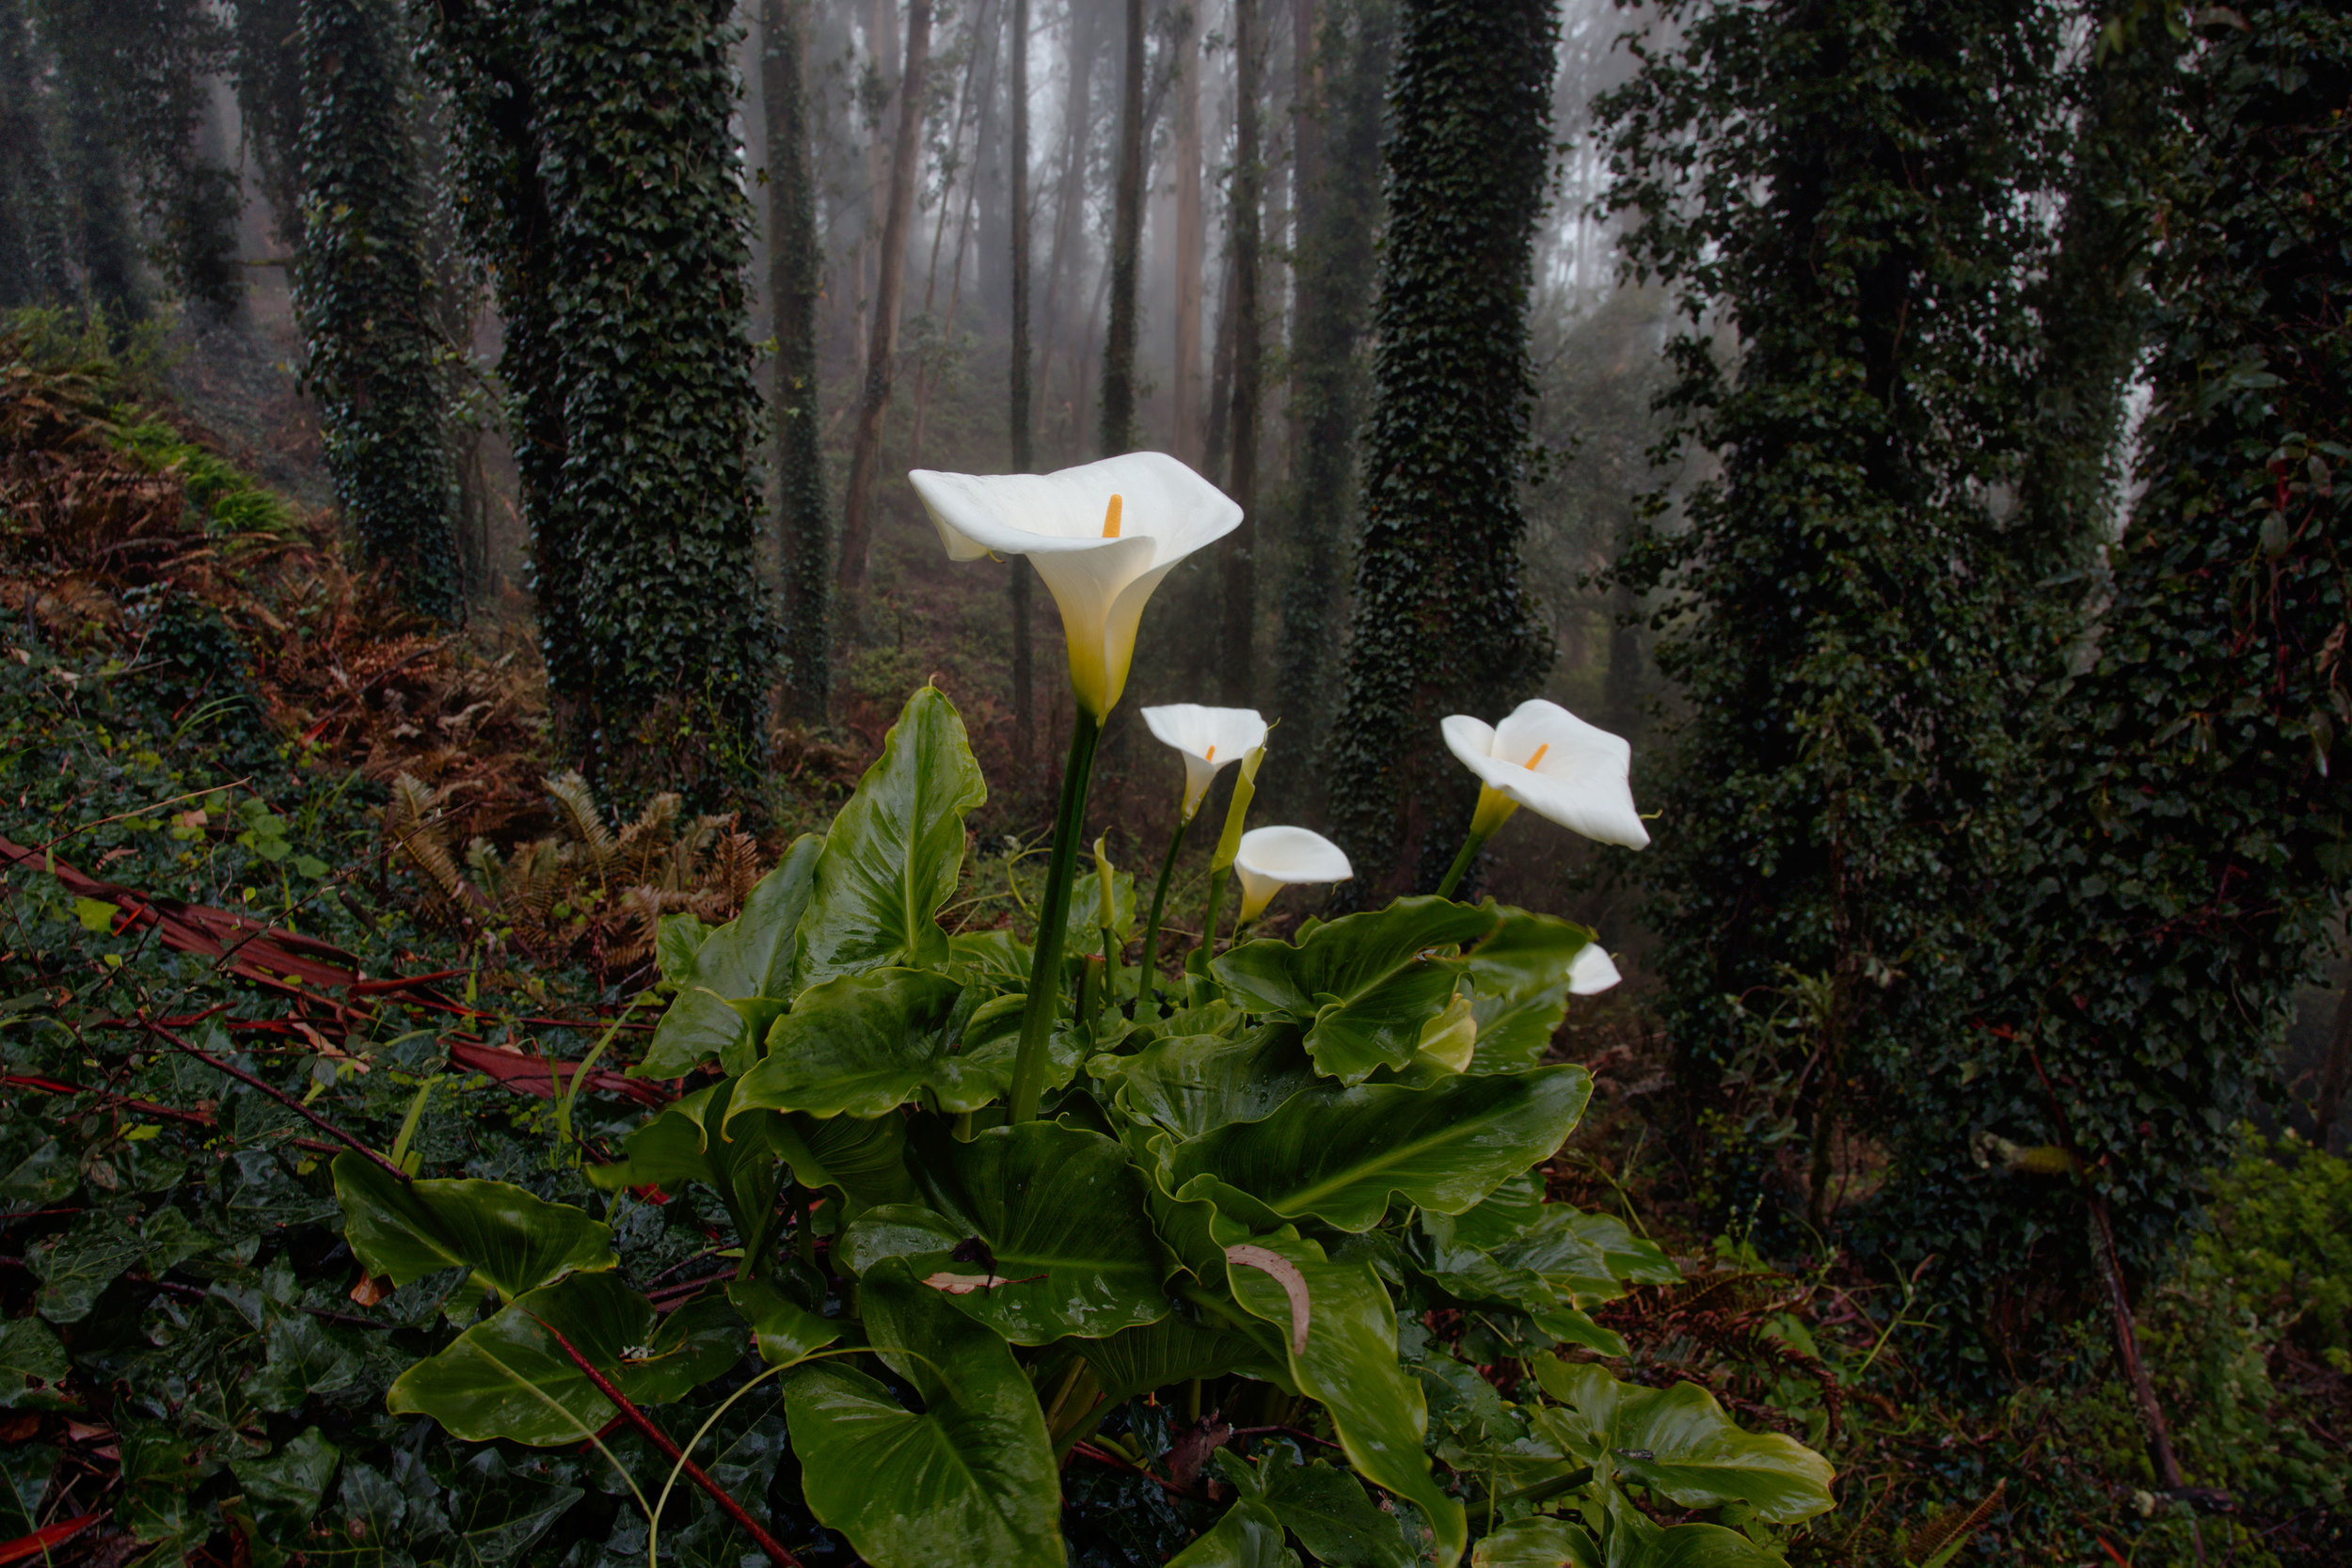 Lillies in the Fog